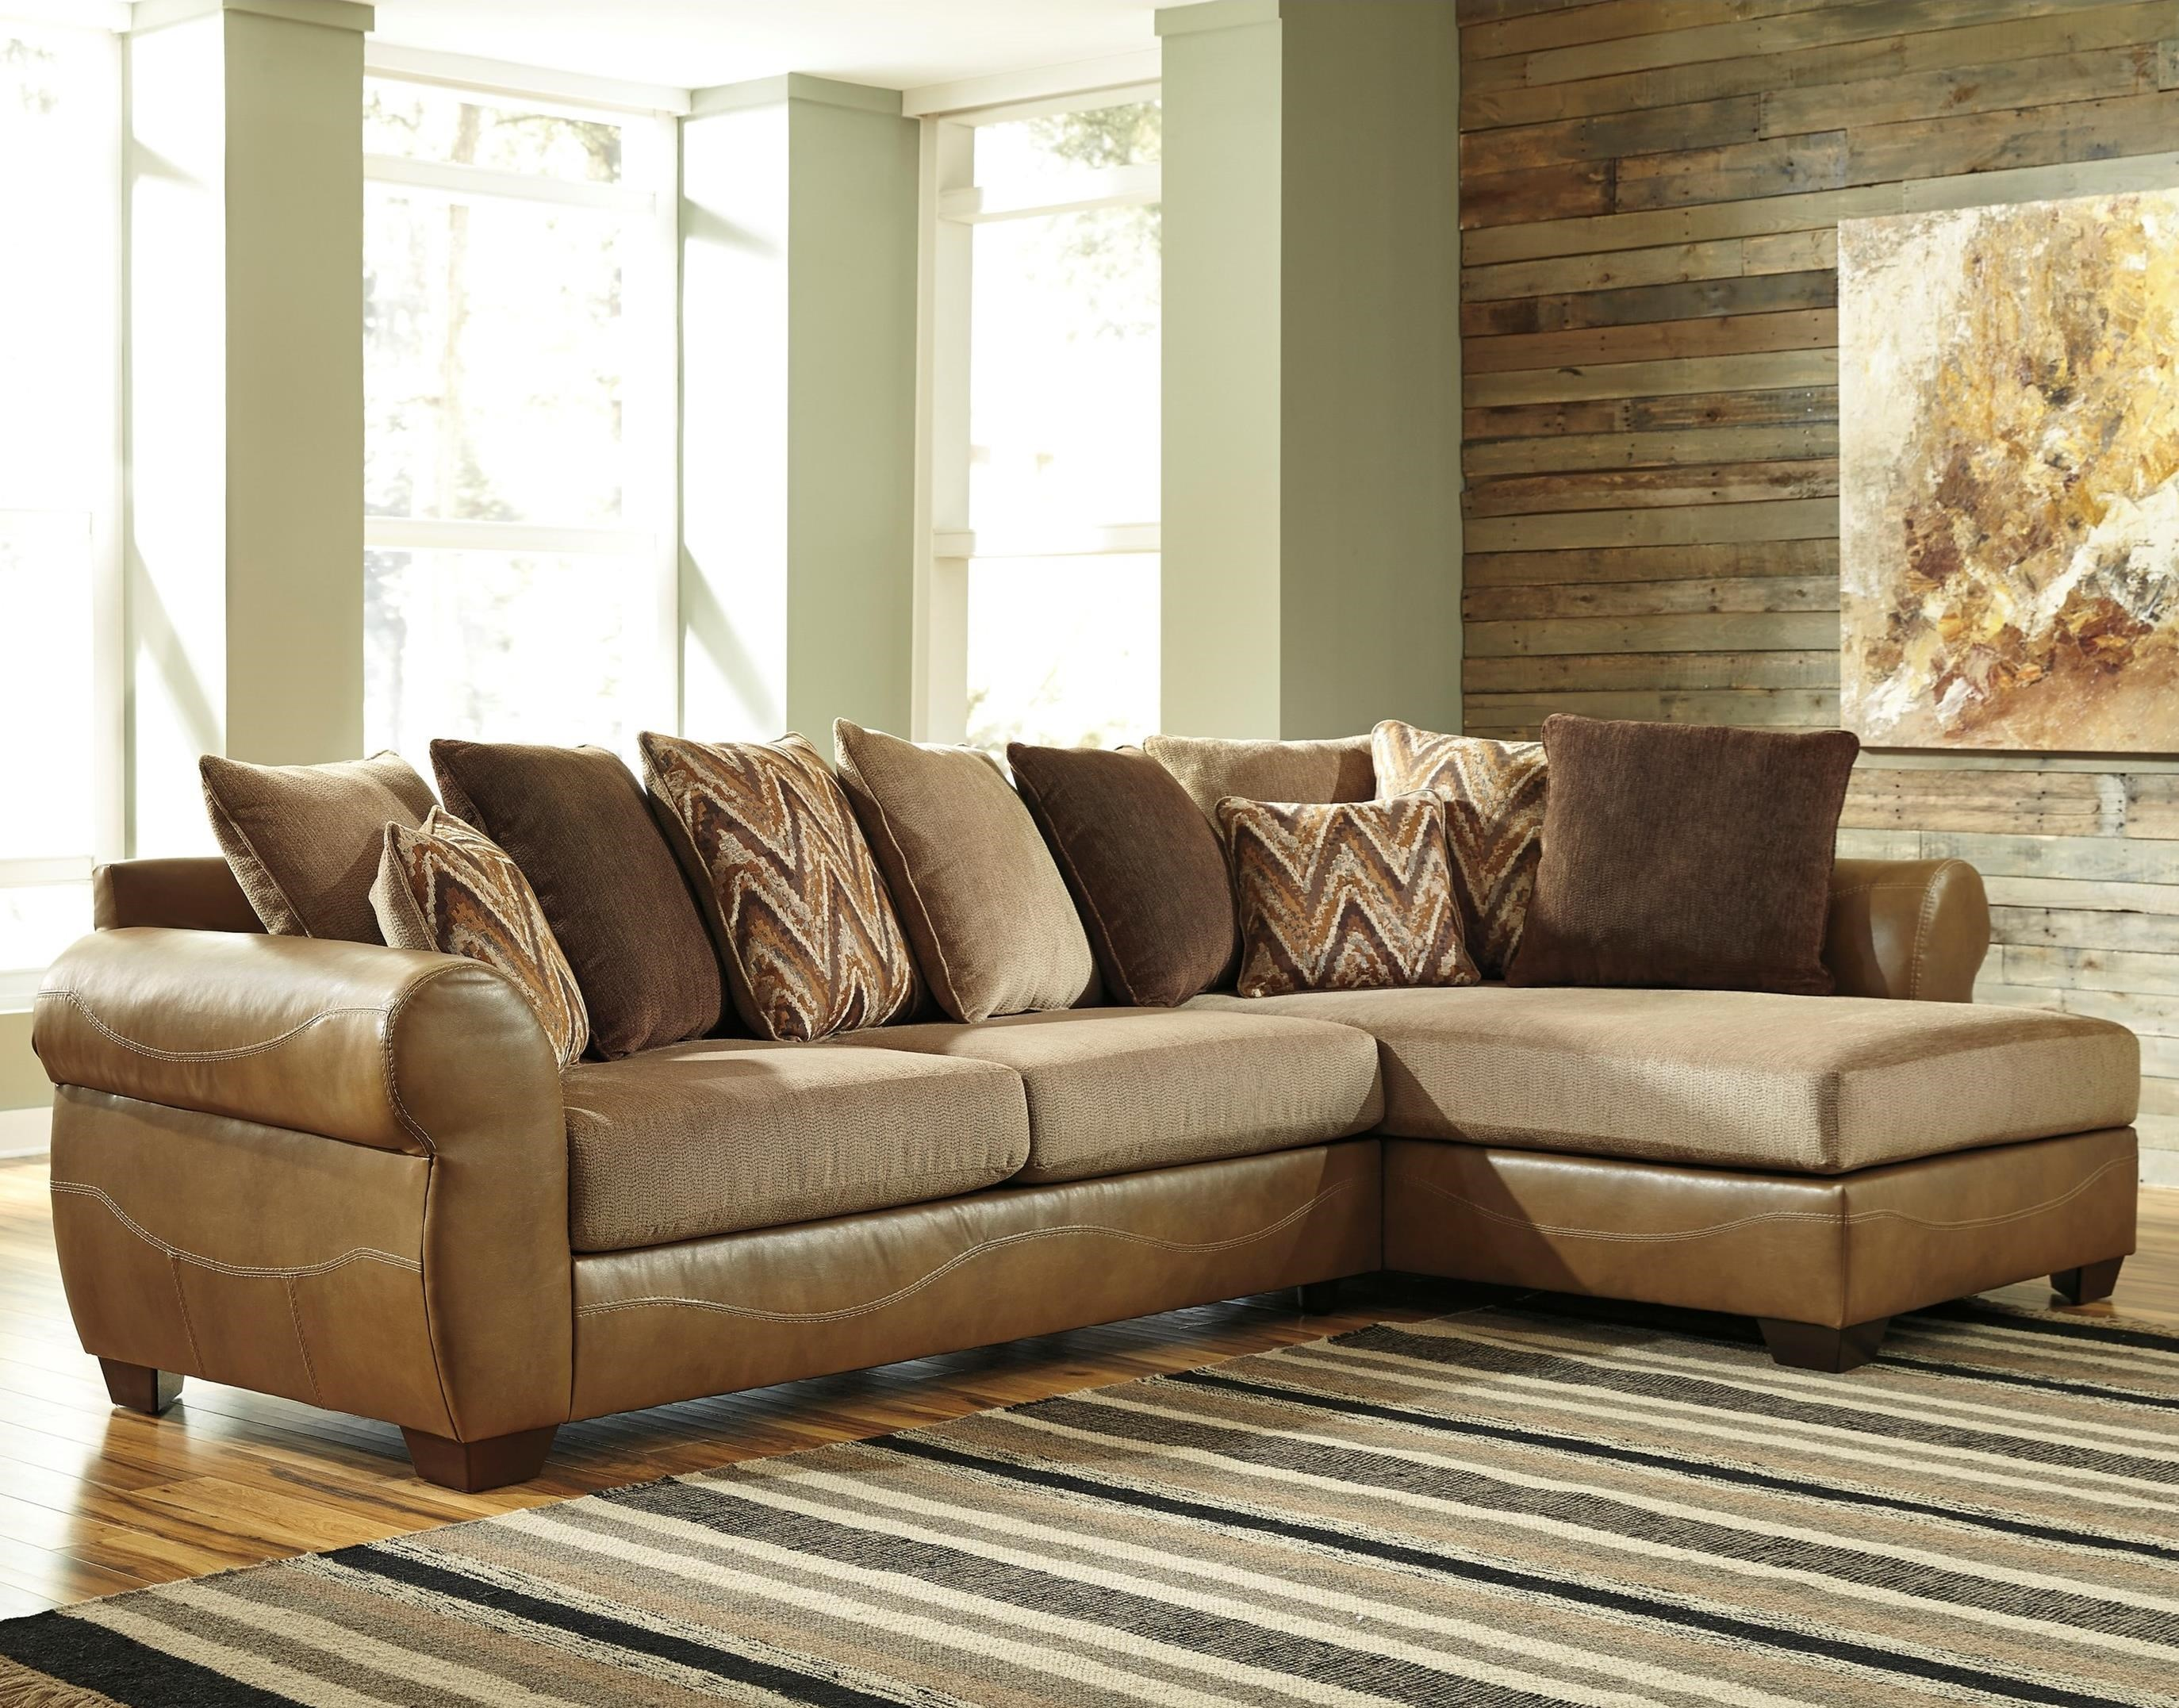 Benchcraft Declain 2 Piece Sectional With Right Chaise And Loose Back  Pillows